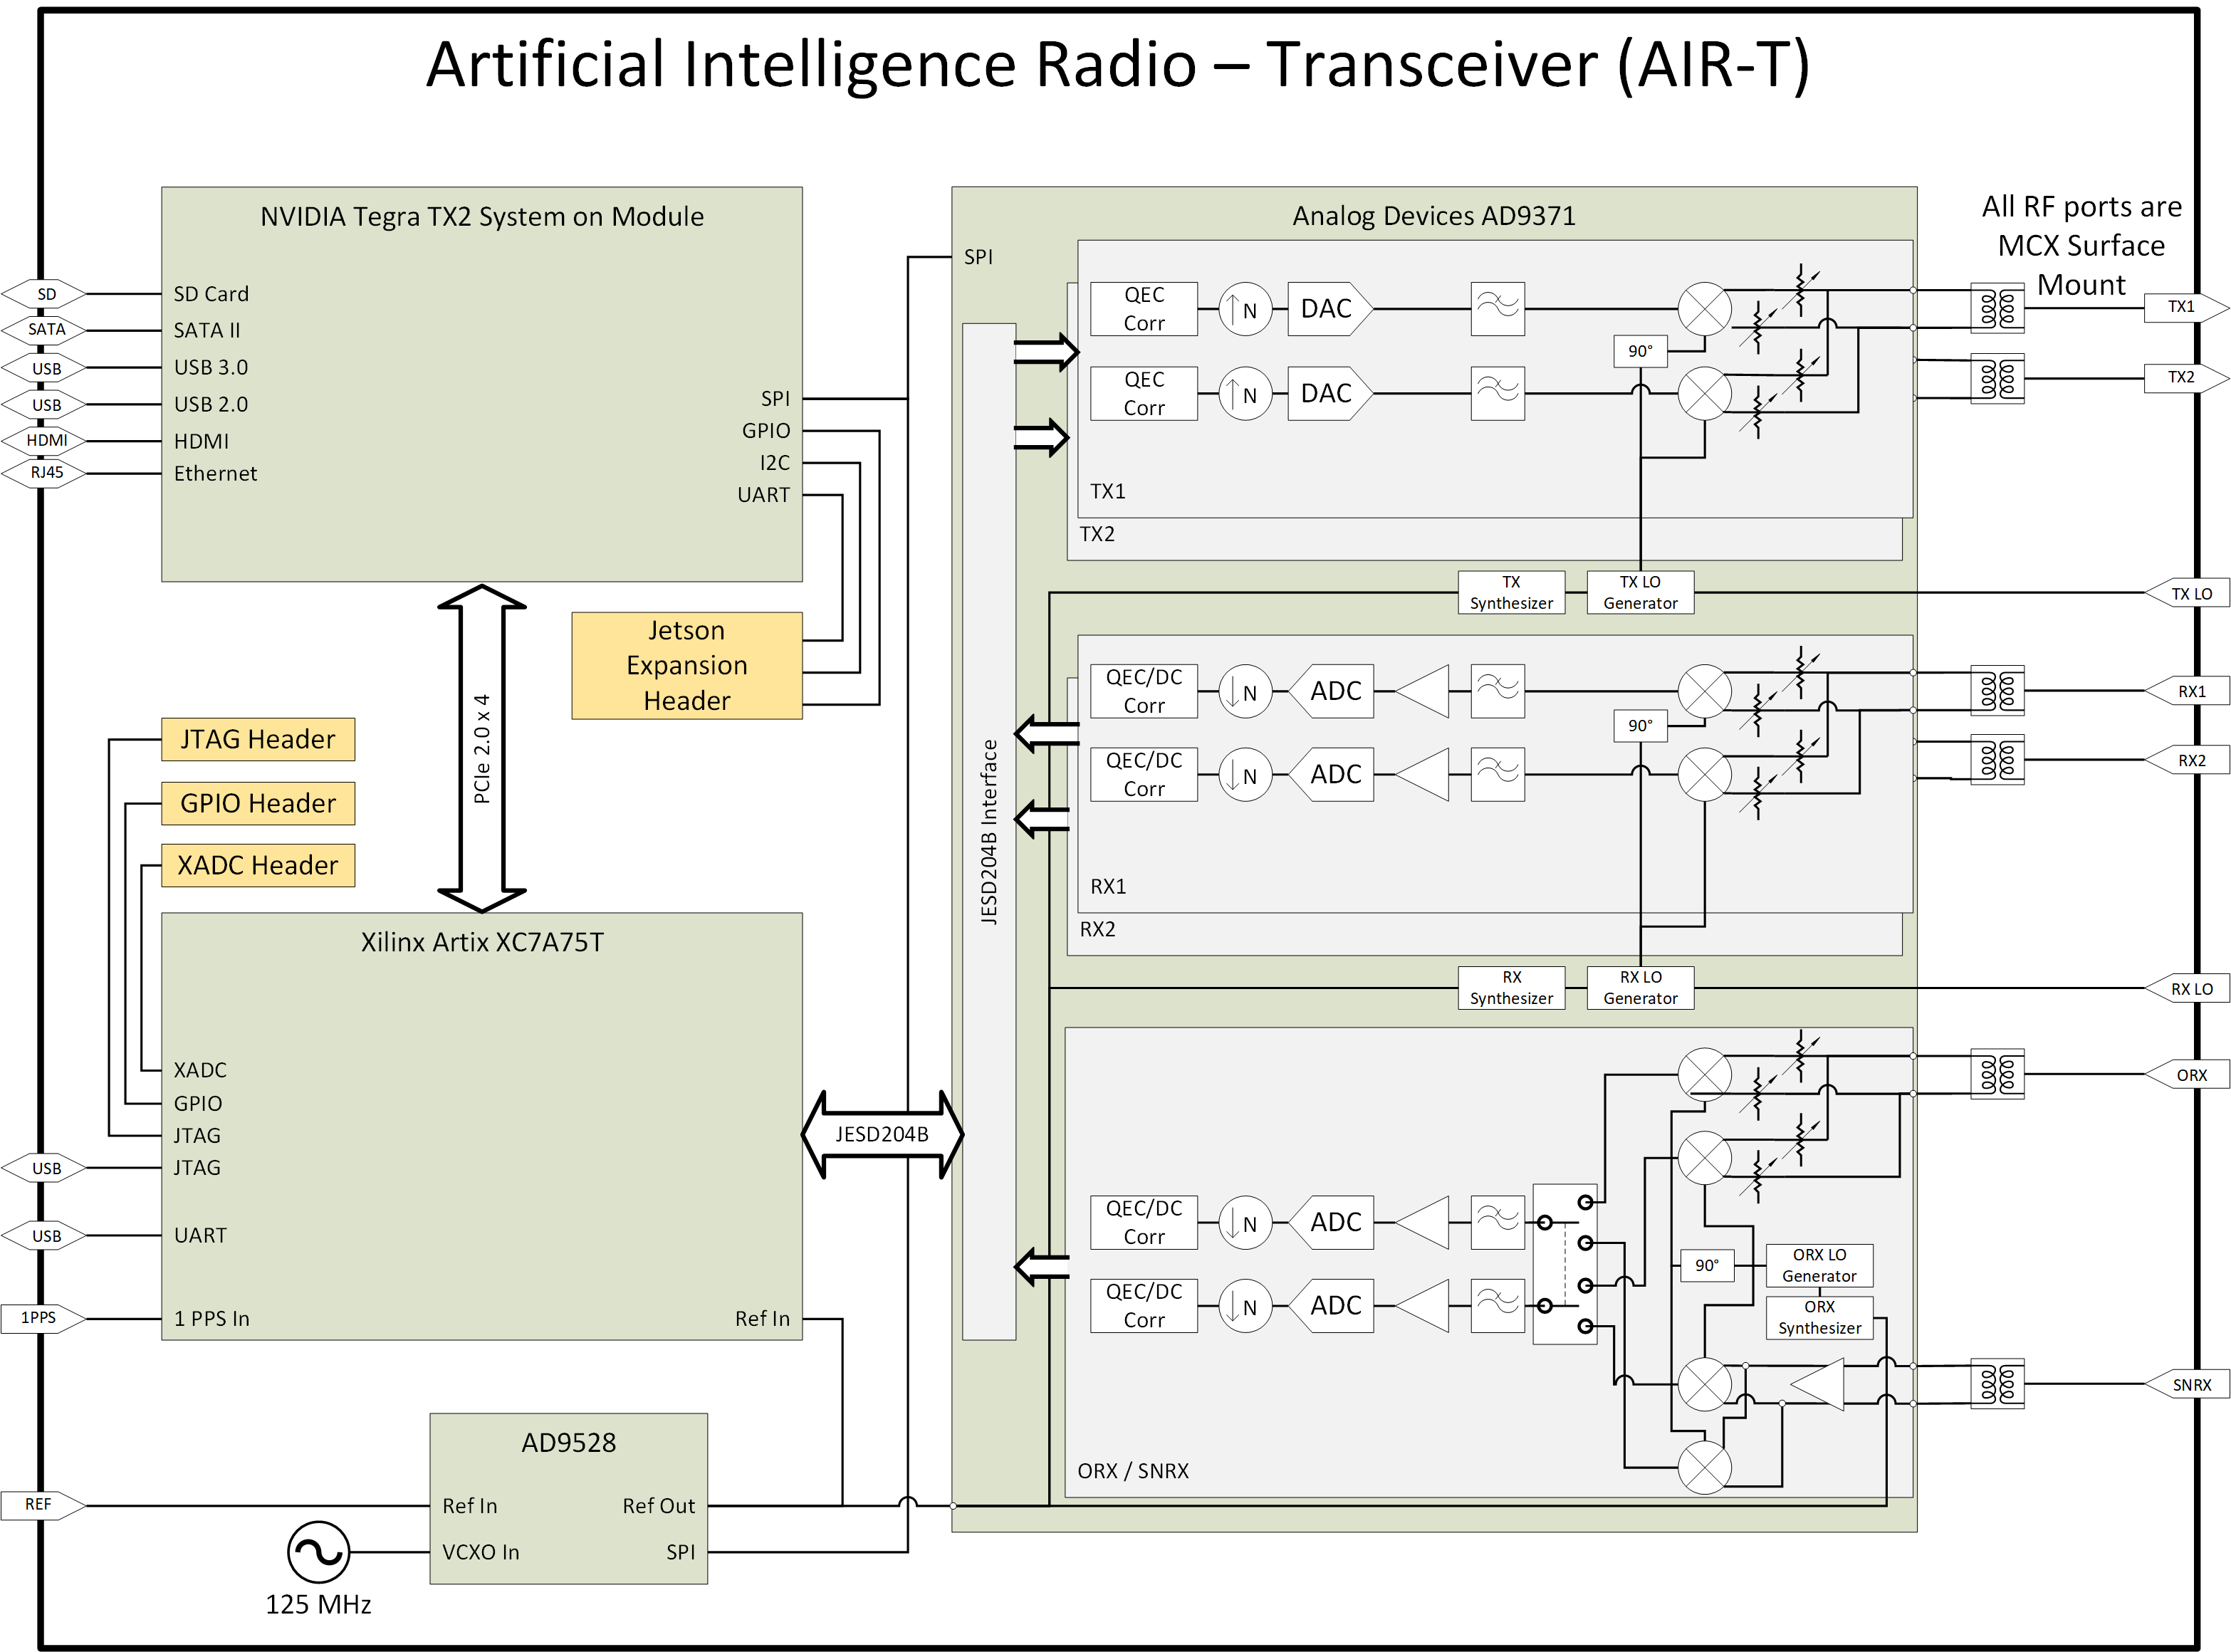 Artificial Intelligence Radio - Transceiver (AIR-T ... on bridge schematic, rs-232 schematic, sensor schematic, server schematic, mouse schematic, motor schematic, multiplexer schematic, cpu schematic, power schematic, balun schematic, camera schematic, modem schematic, audio schematic, rf probe schematic,